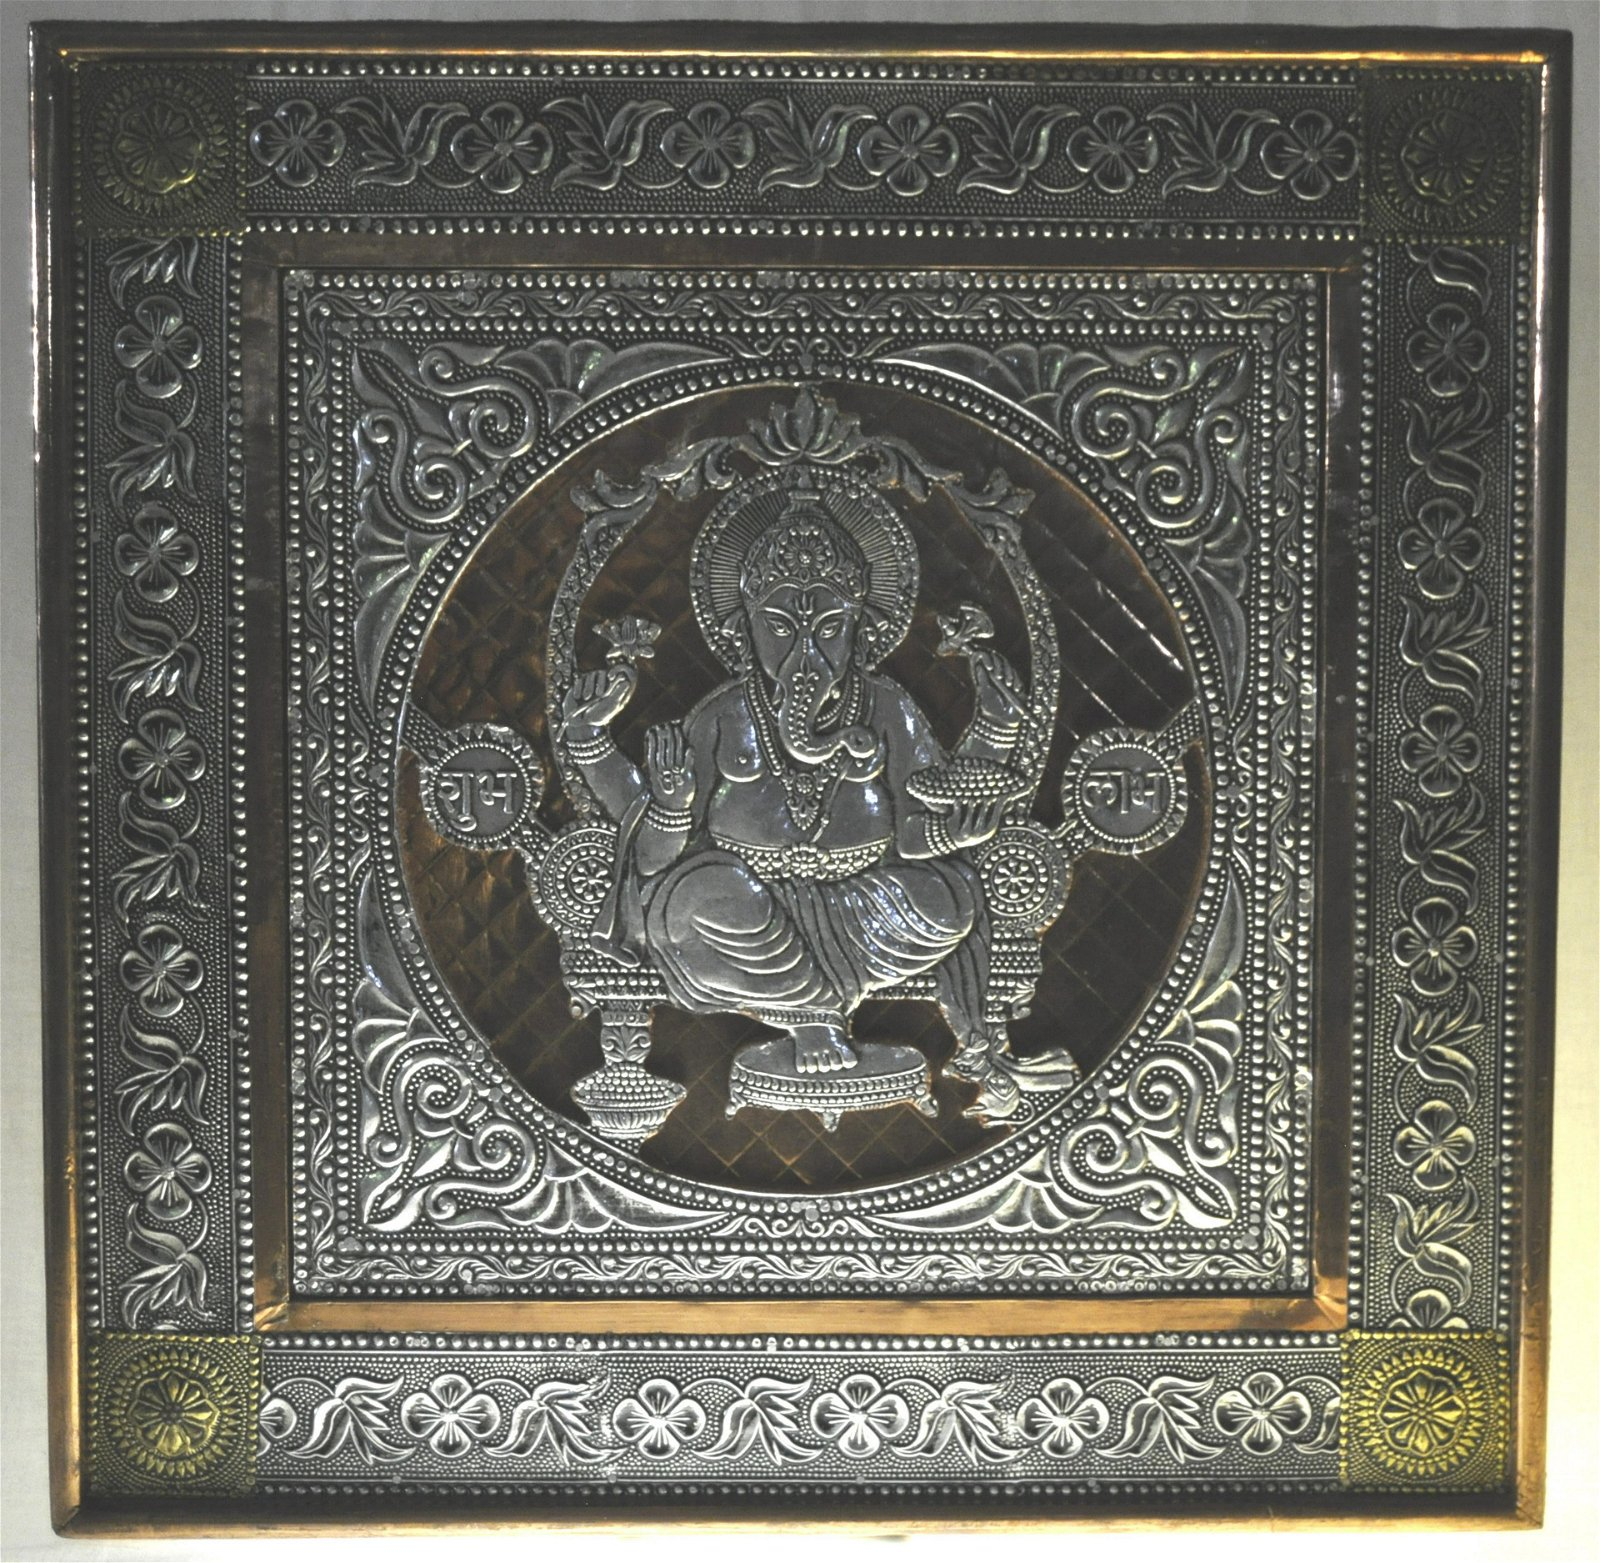 Hindu Iconography Mixed Metal Wall Plaque